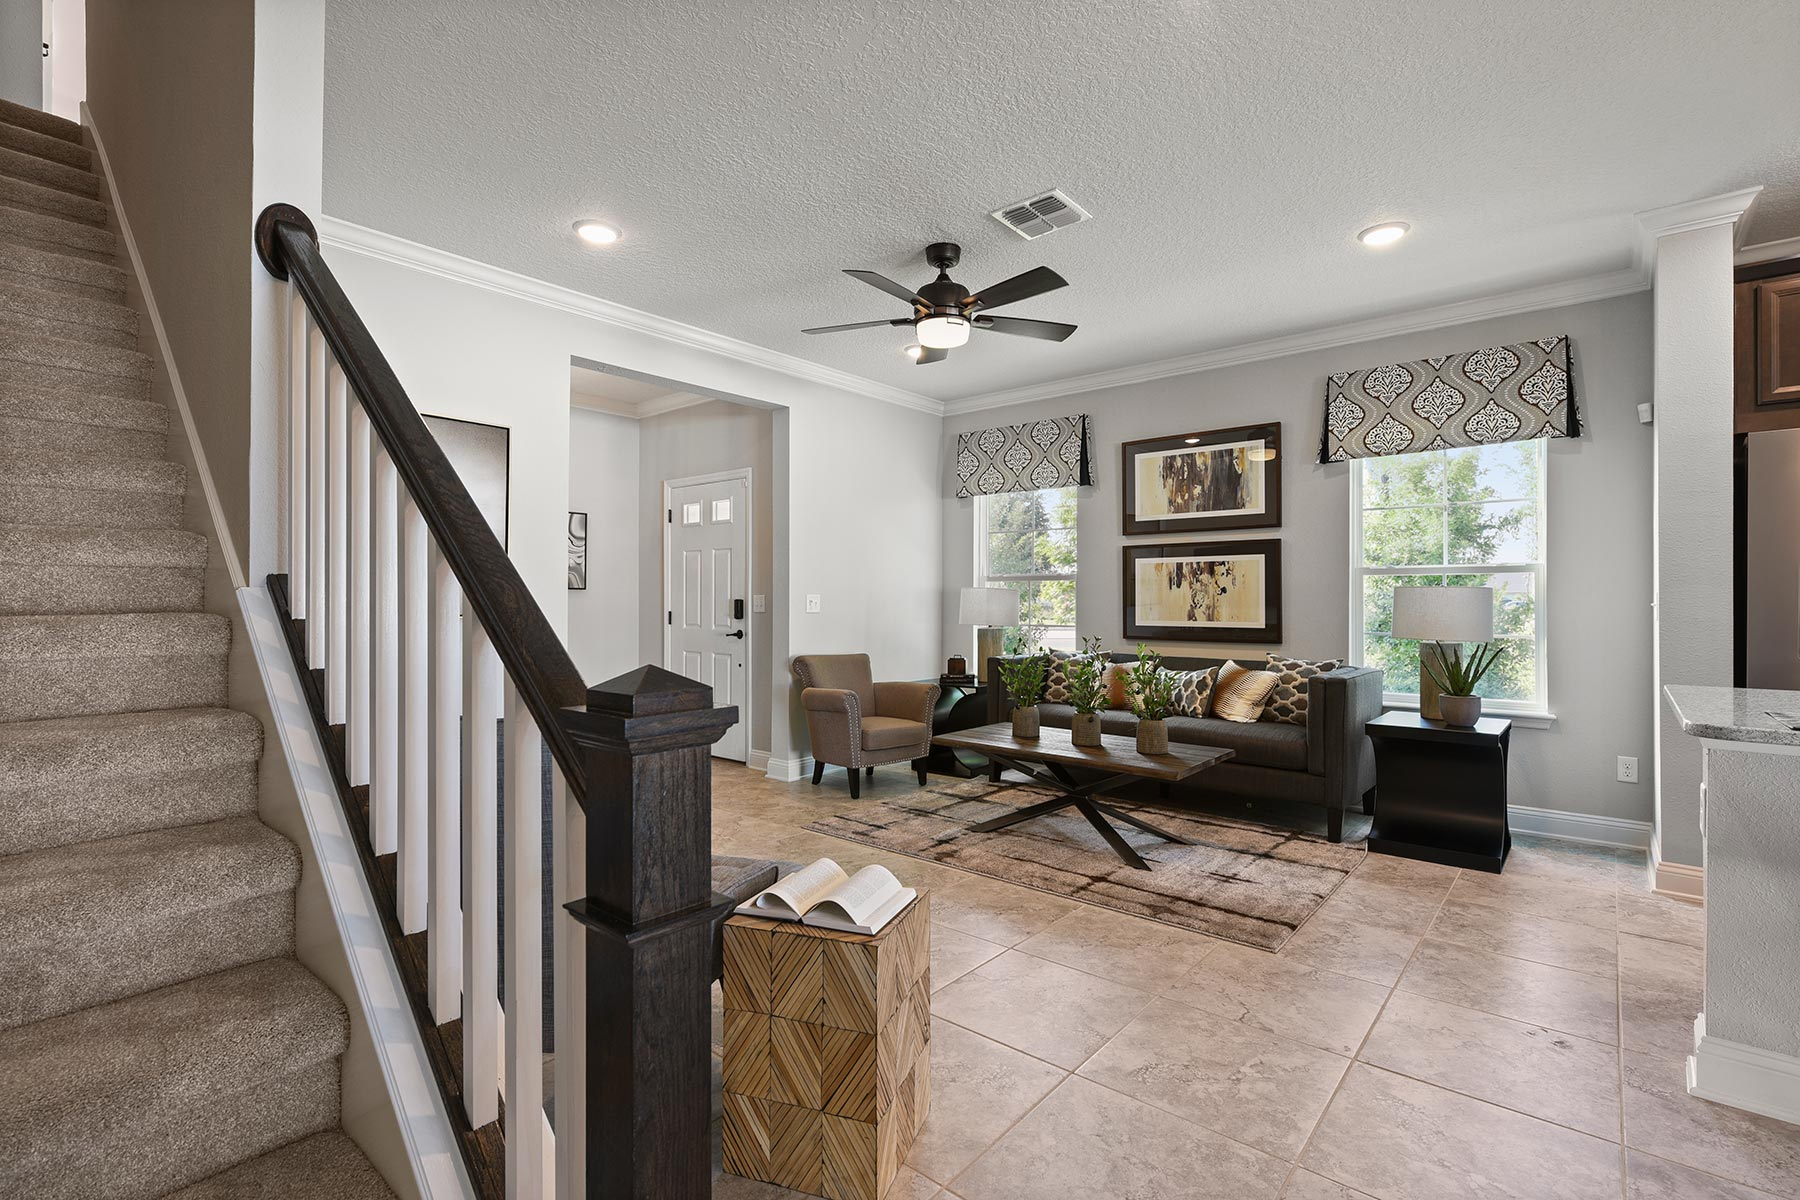 Spring Plan Stairs at Wells Creek in Jacksonville Florida by Mattamy Homes